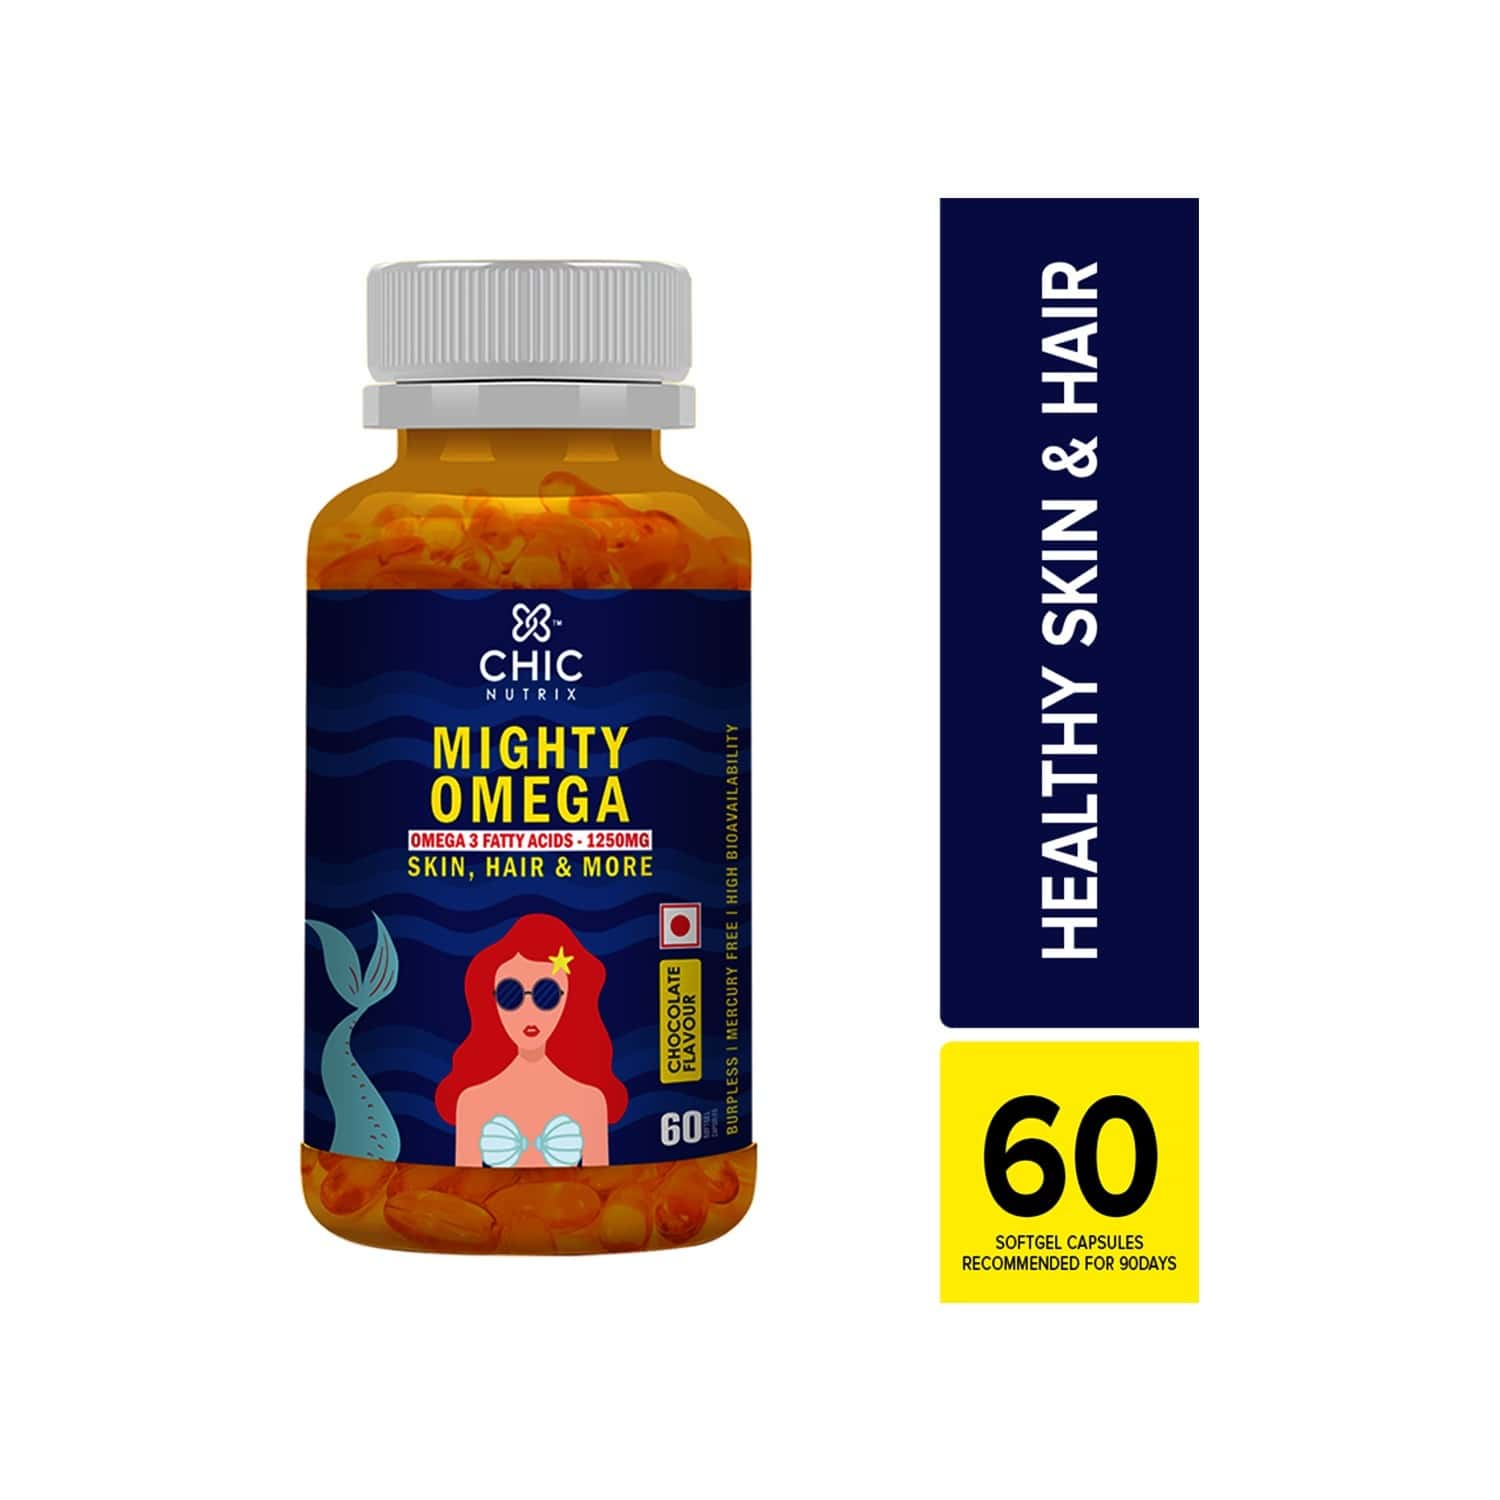 Chicnutrix Mighty Omega Chocolate Skin Care Capsules Bottle Of 60